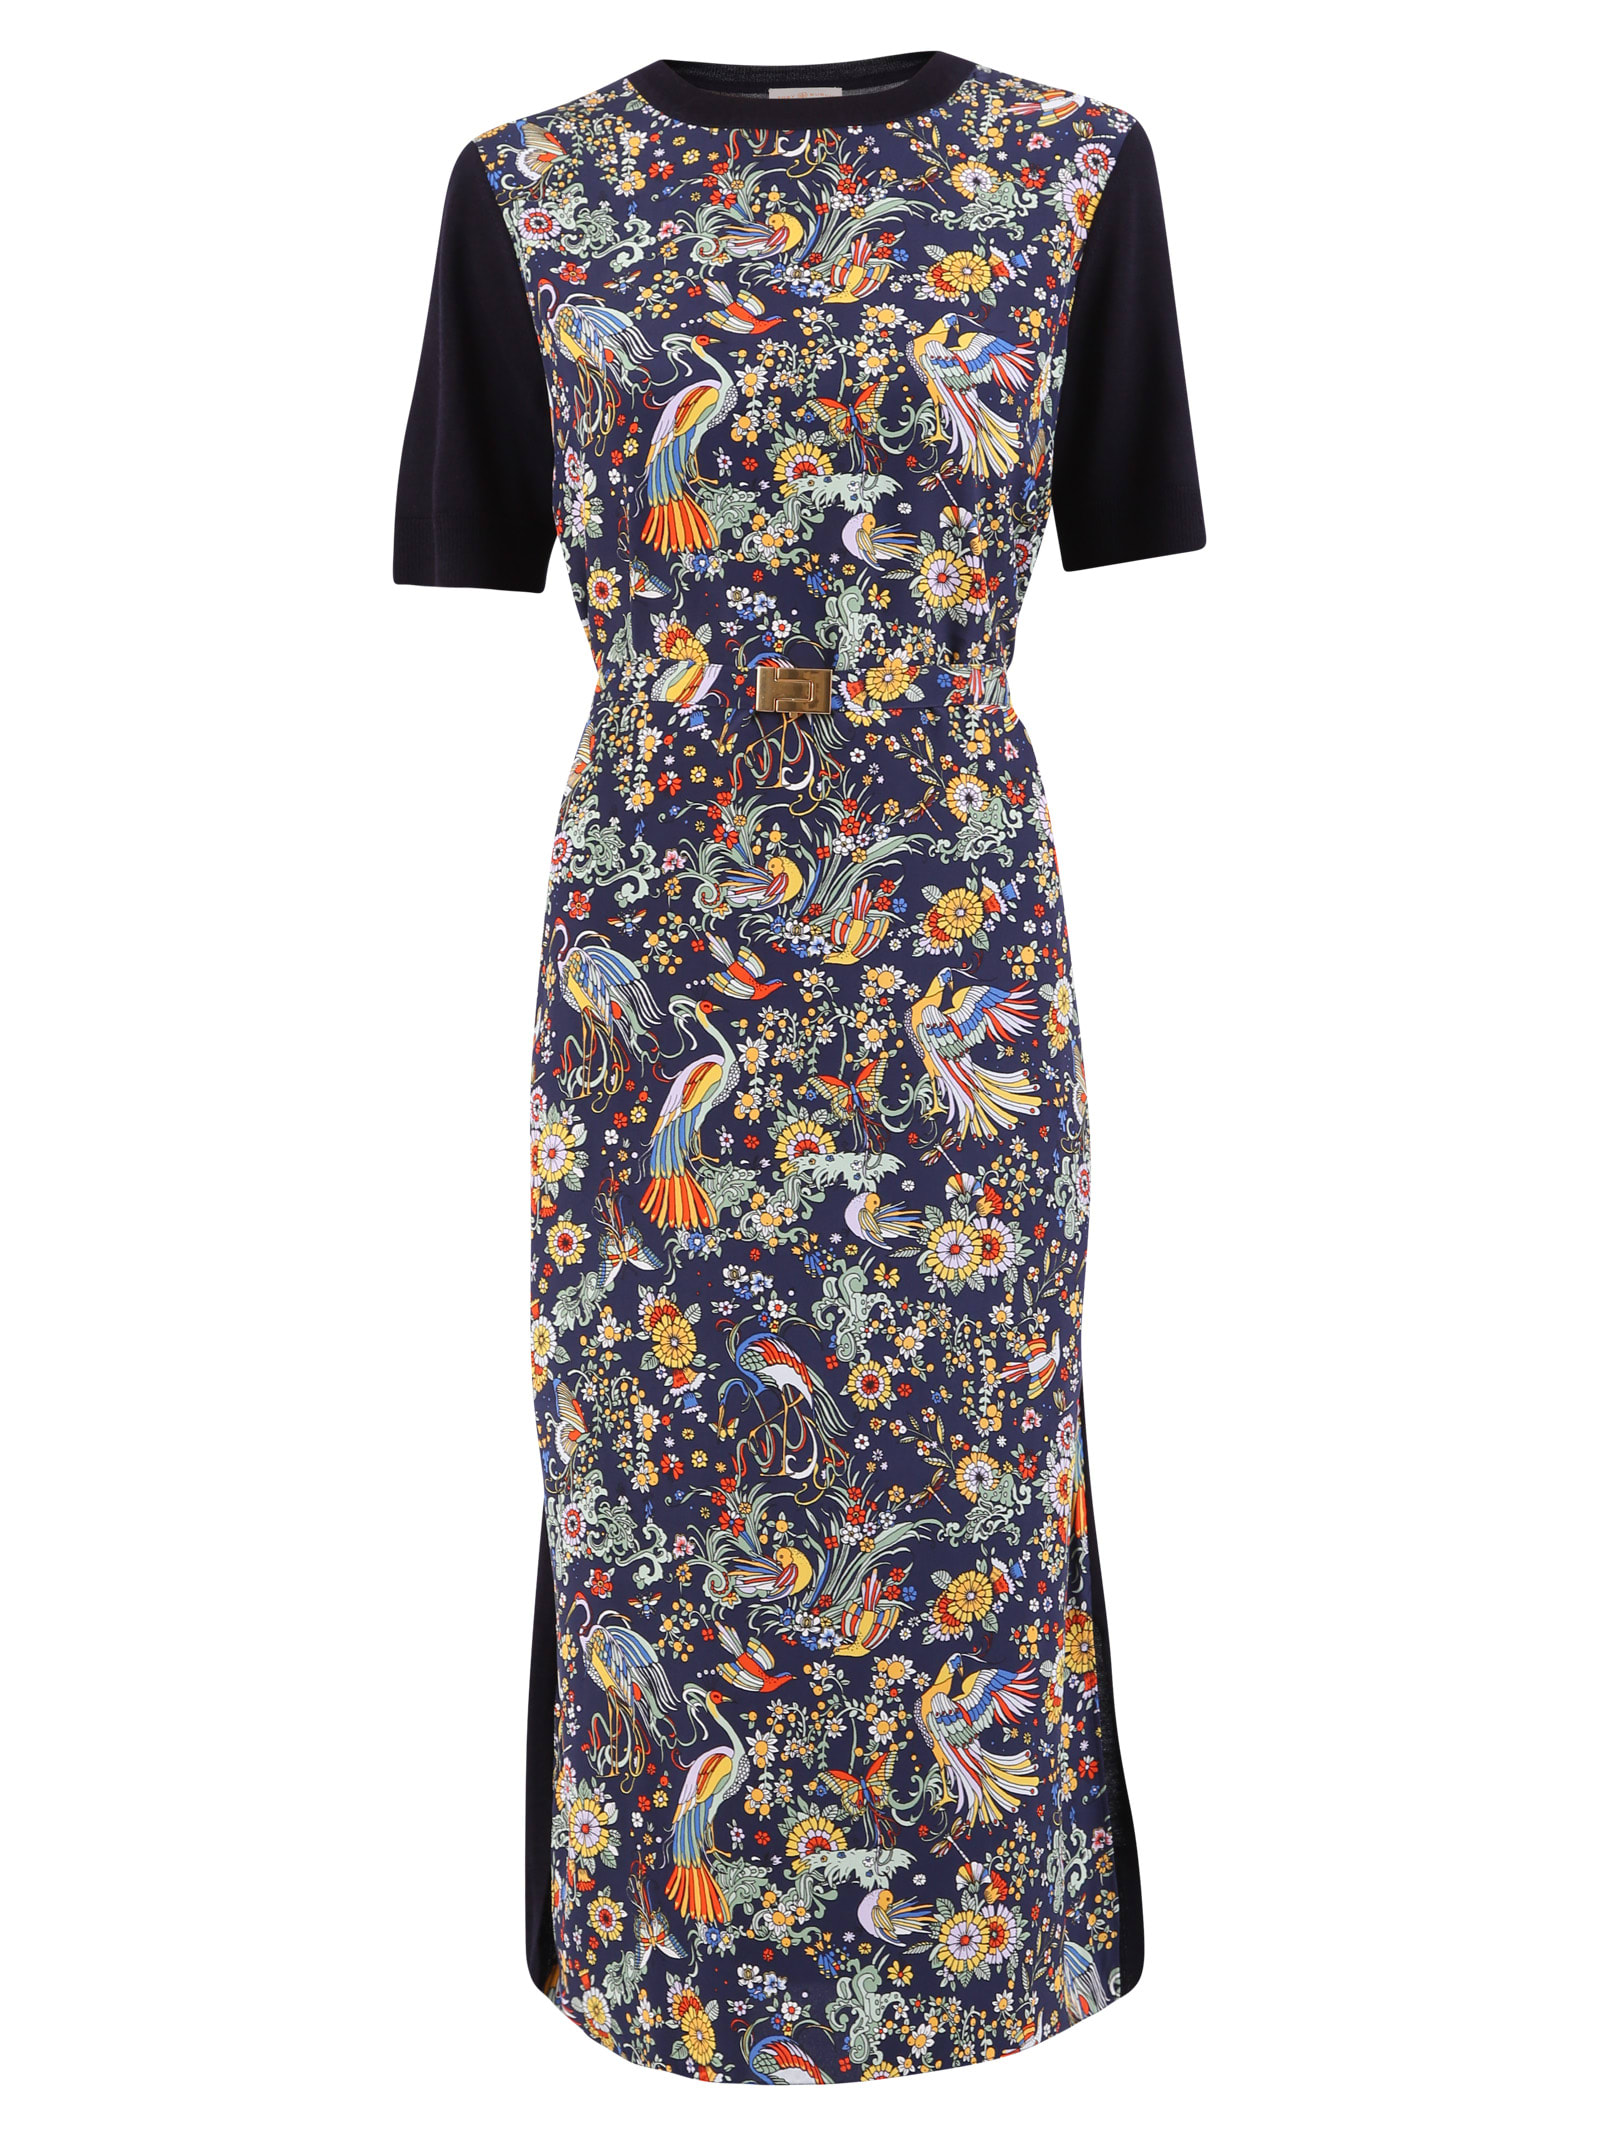 Buy Tory Burch Floral Print Dress online, shop Tory Burch with free shipping